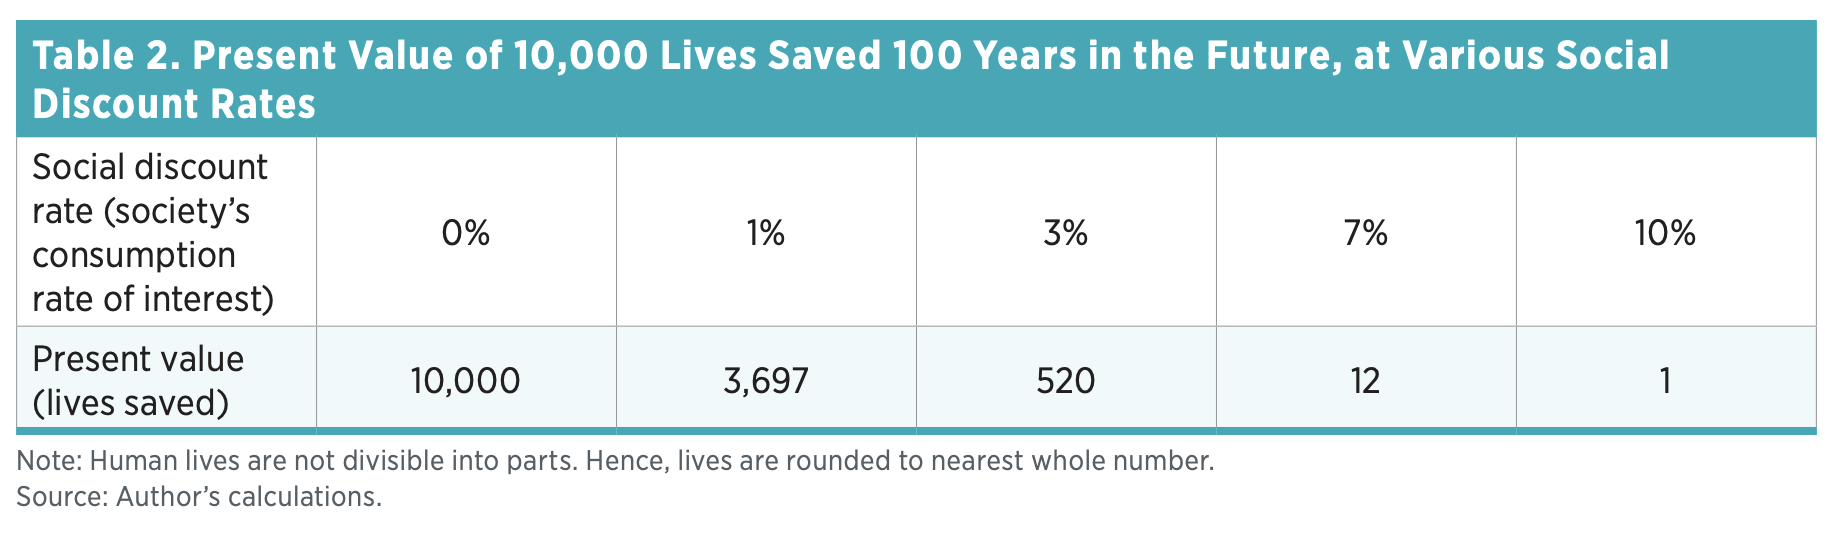 Table 2. Present Value of 10,000 Lives Saved 100 Years in the Future, at Various Social Discount Rates